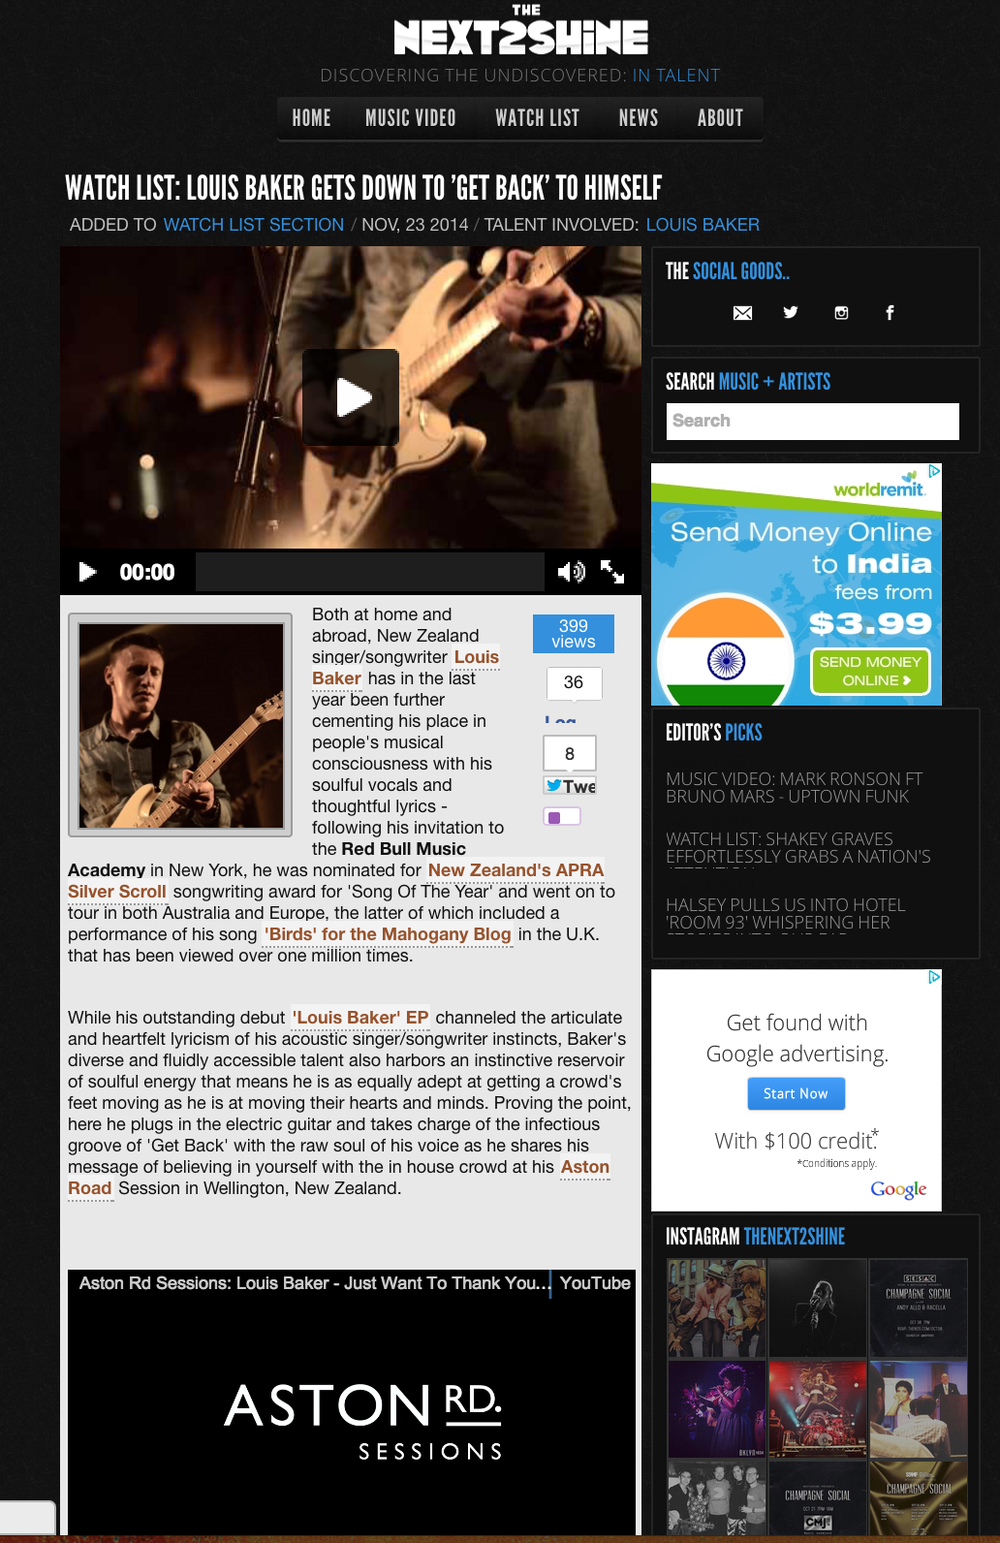 "Our video of Louis Baker's Aston Rd Sessions (live) ""Get Back"" featured on TheNext2Shine.com's Watch List."